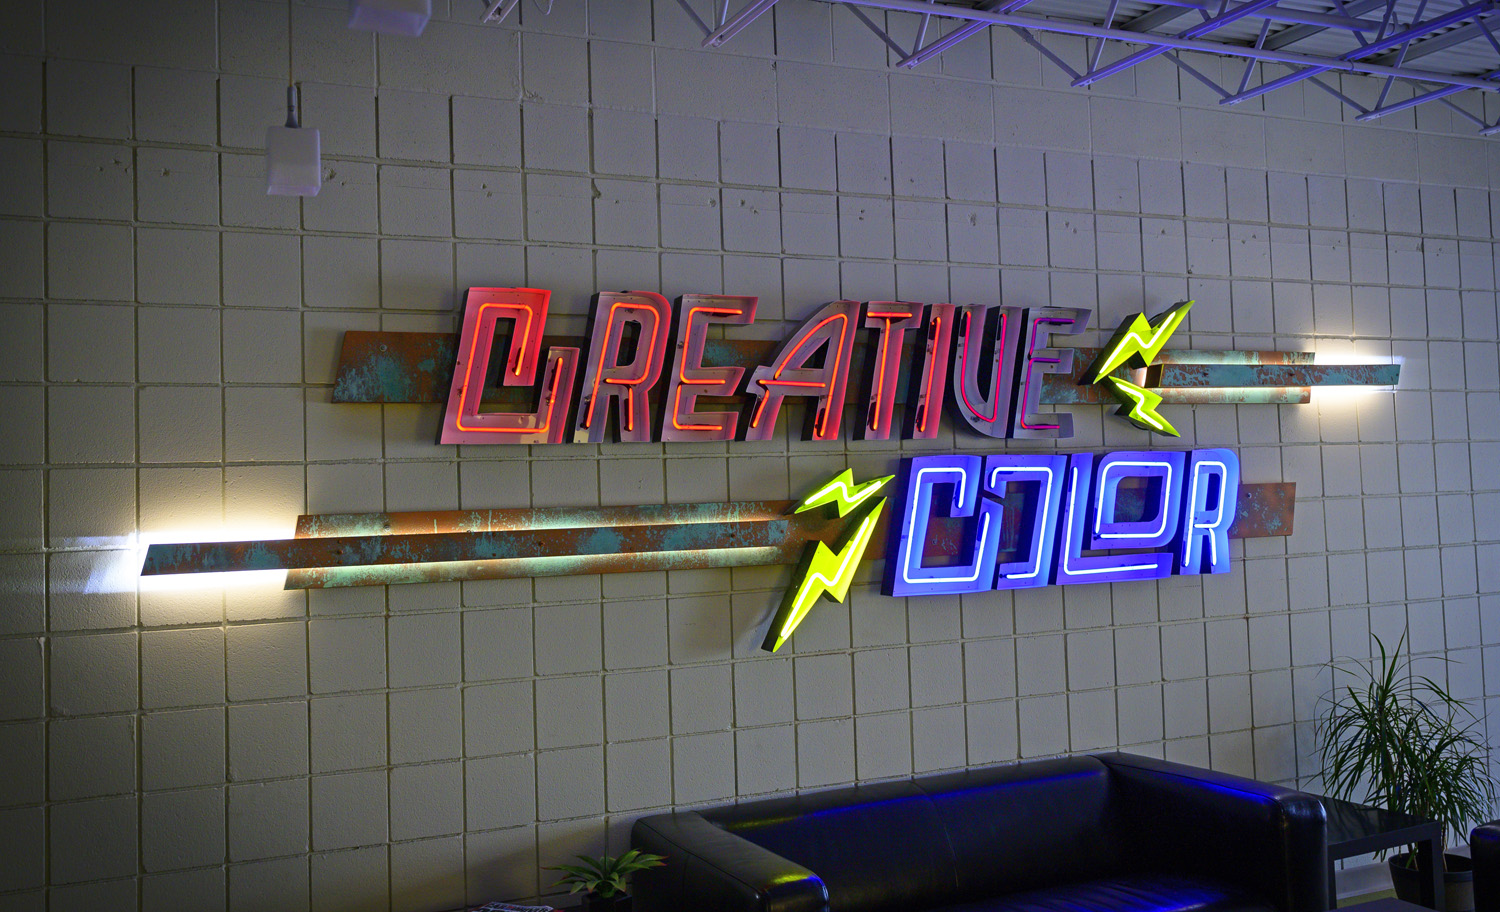 Creative Color (Minneapolis) fashioned this striking sign with open-faced neon channel letters for itself.